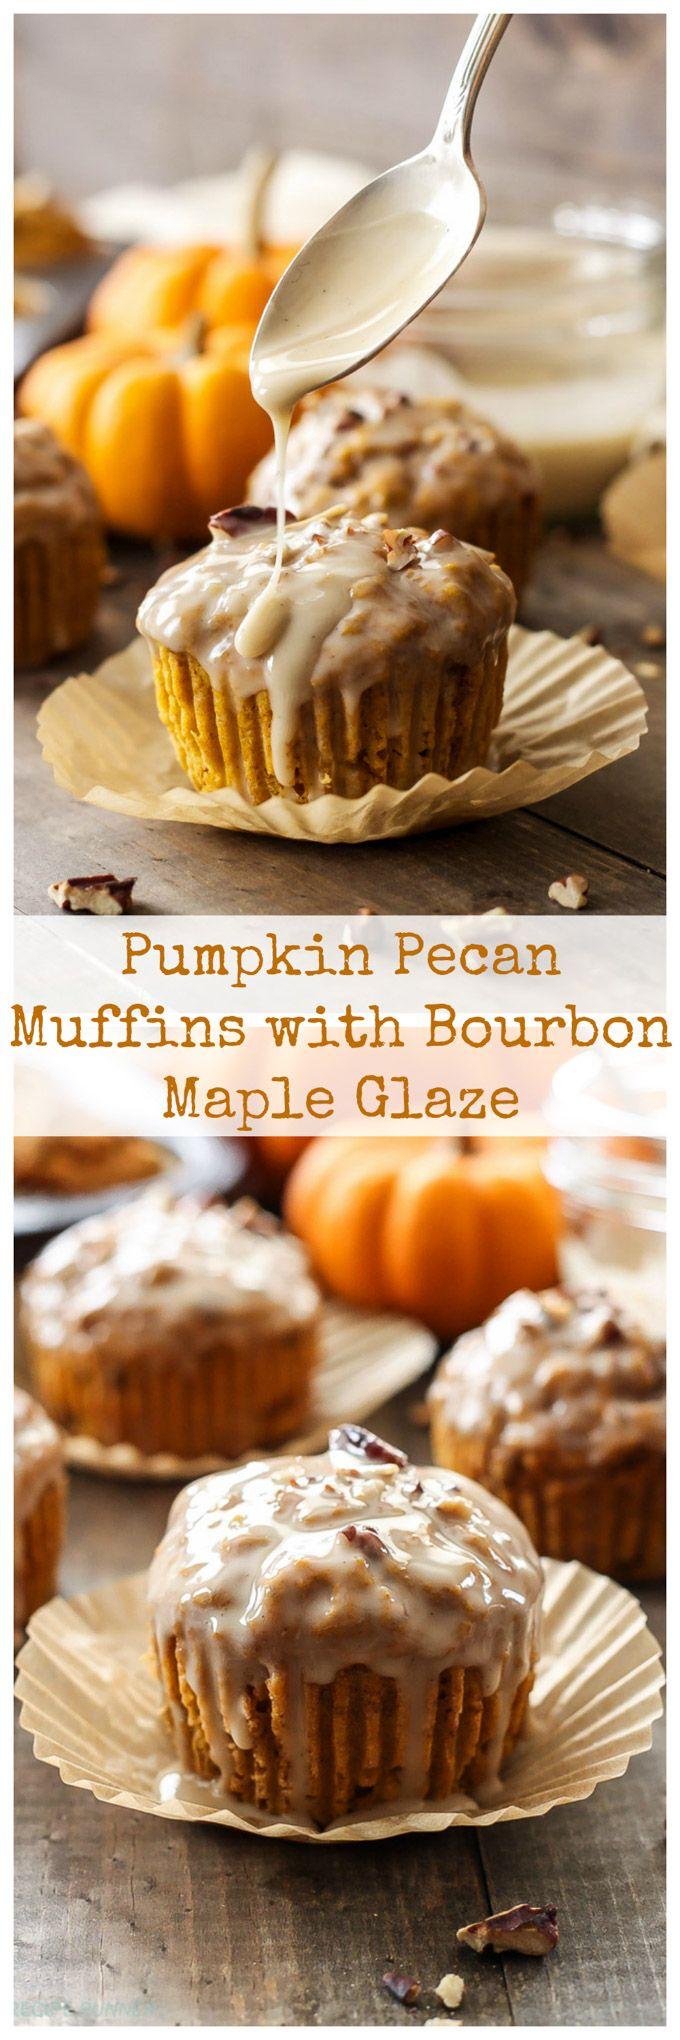 ... images about breads on Pinterest | Pumpkins, Pecans and Corn muffins